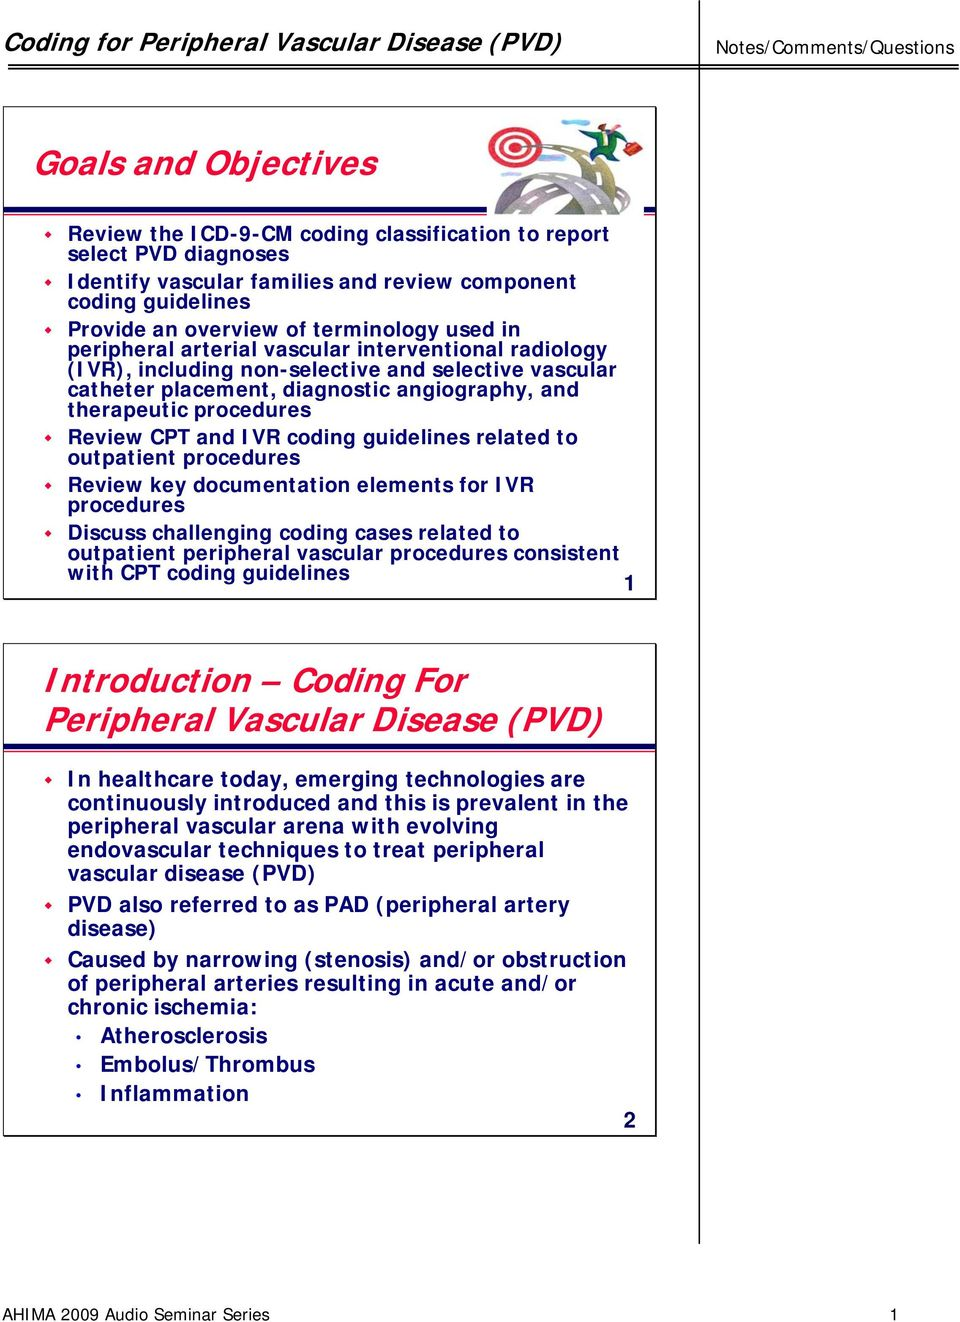 IVR coding guidelines related to outpatient procedures Review key  documentation elements for IVR procedures Discuss challenging